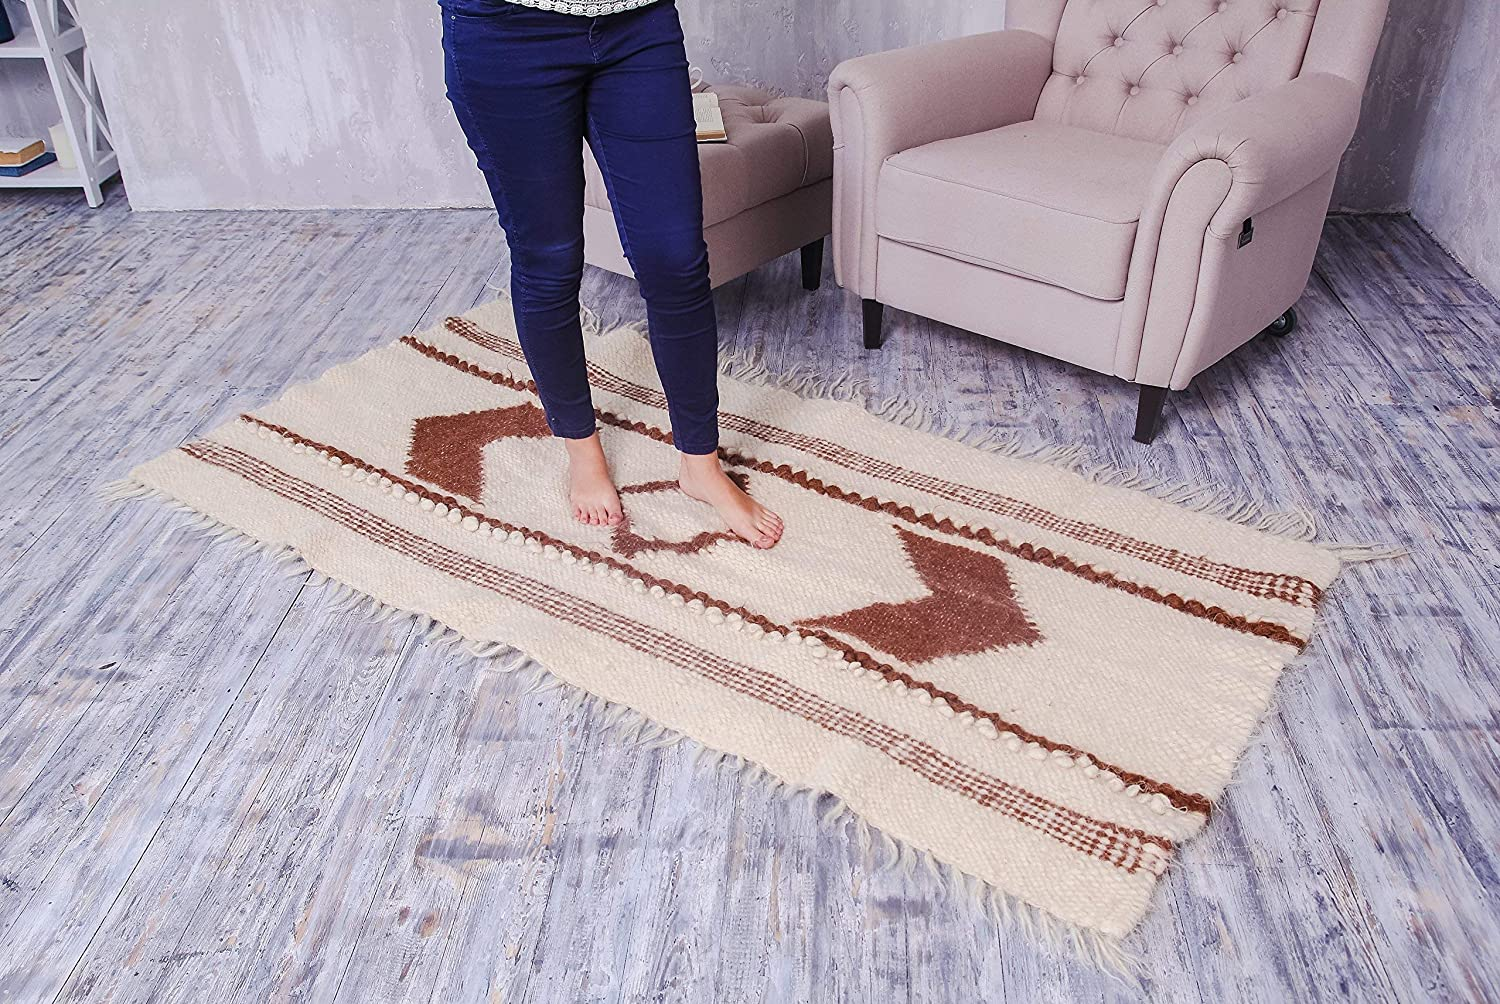 Hall Runner Rug Kitchen Rug Indoore Outdoor Carpet Runner White Wool Area Rug Hand Woven Natural Rustic Home Decor Many Sizes!